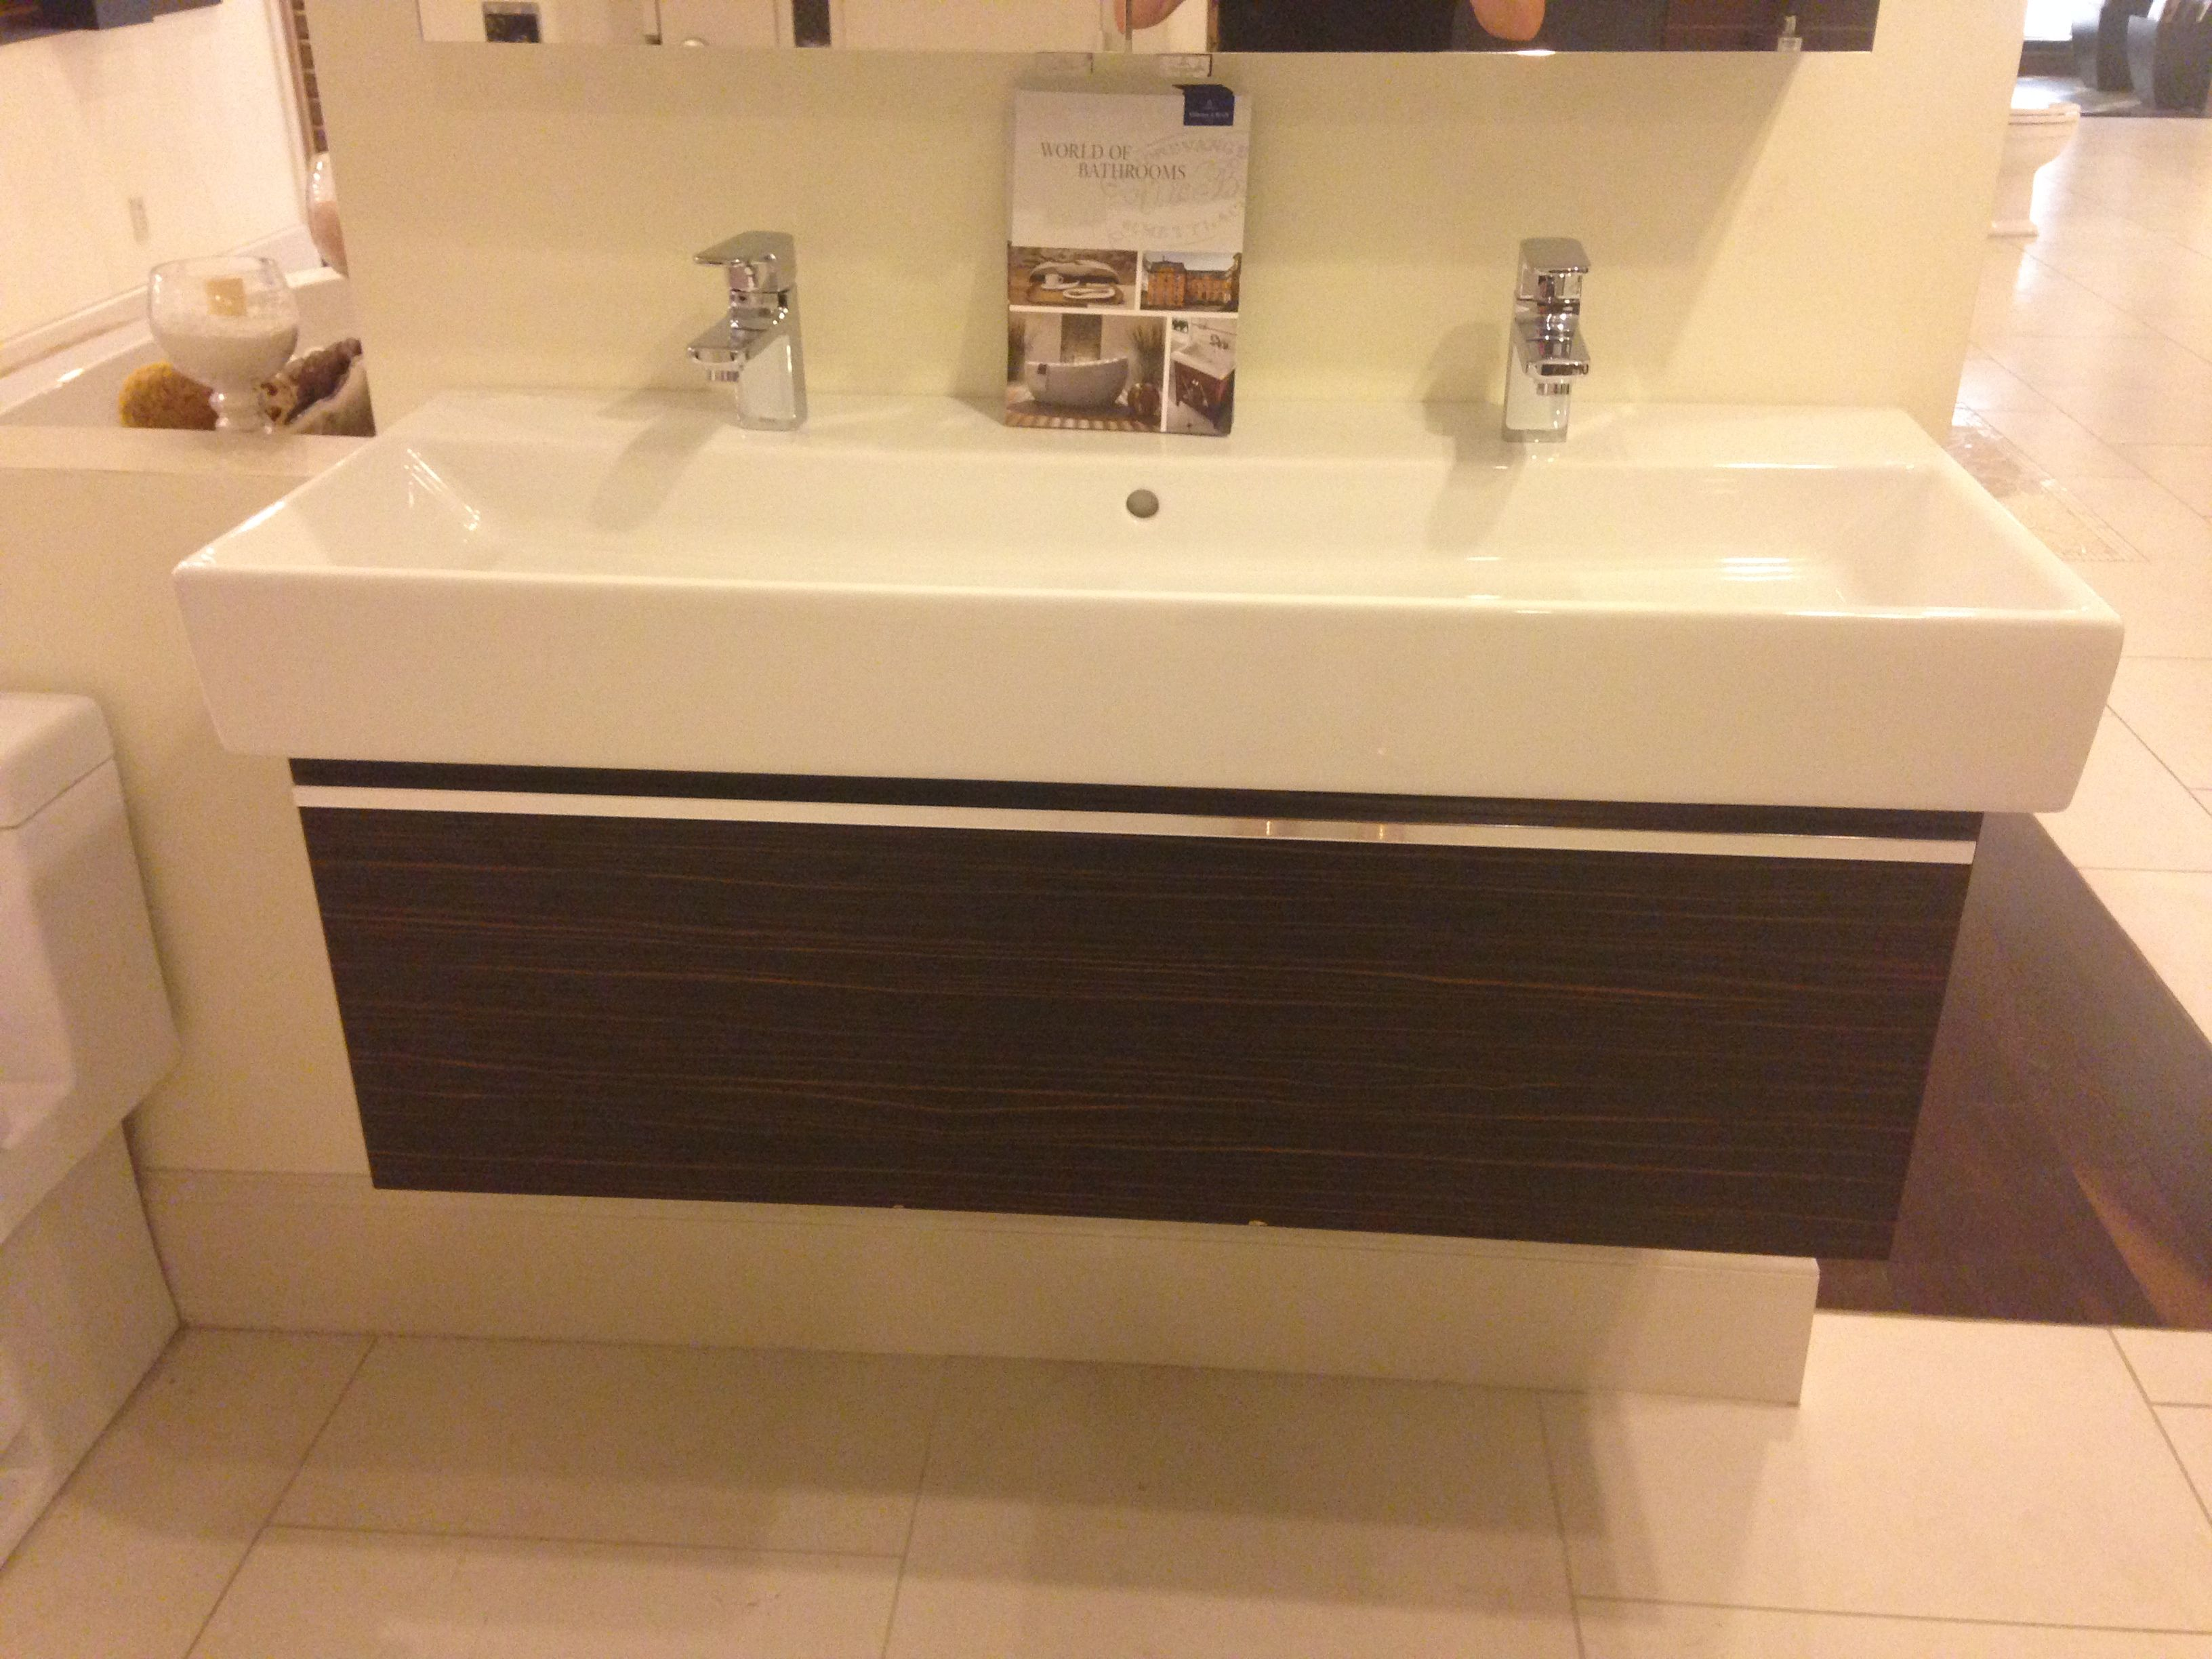 Villeroy & Boch Memento Top with a Central Line Vanity 44\' Toto ...